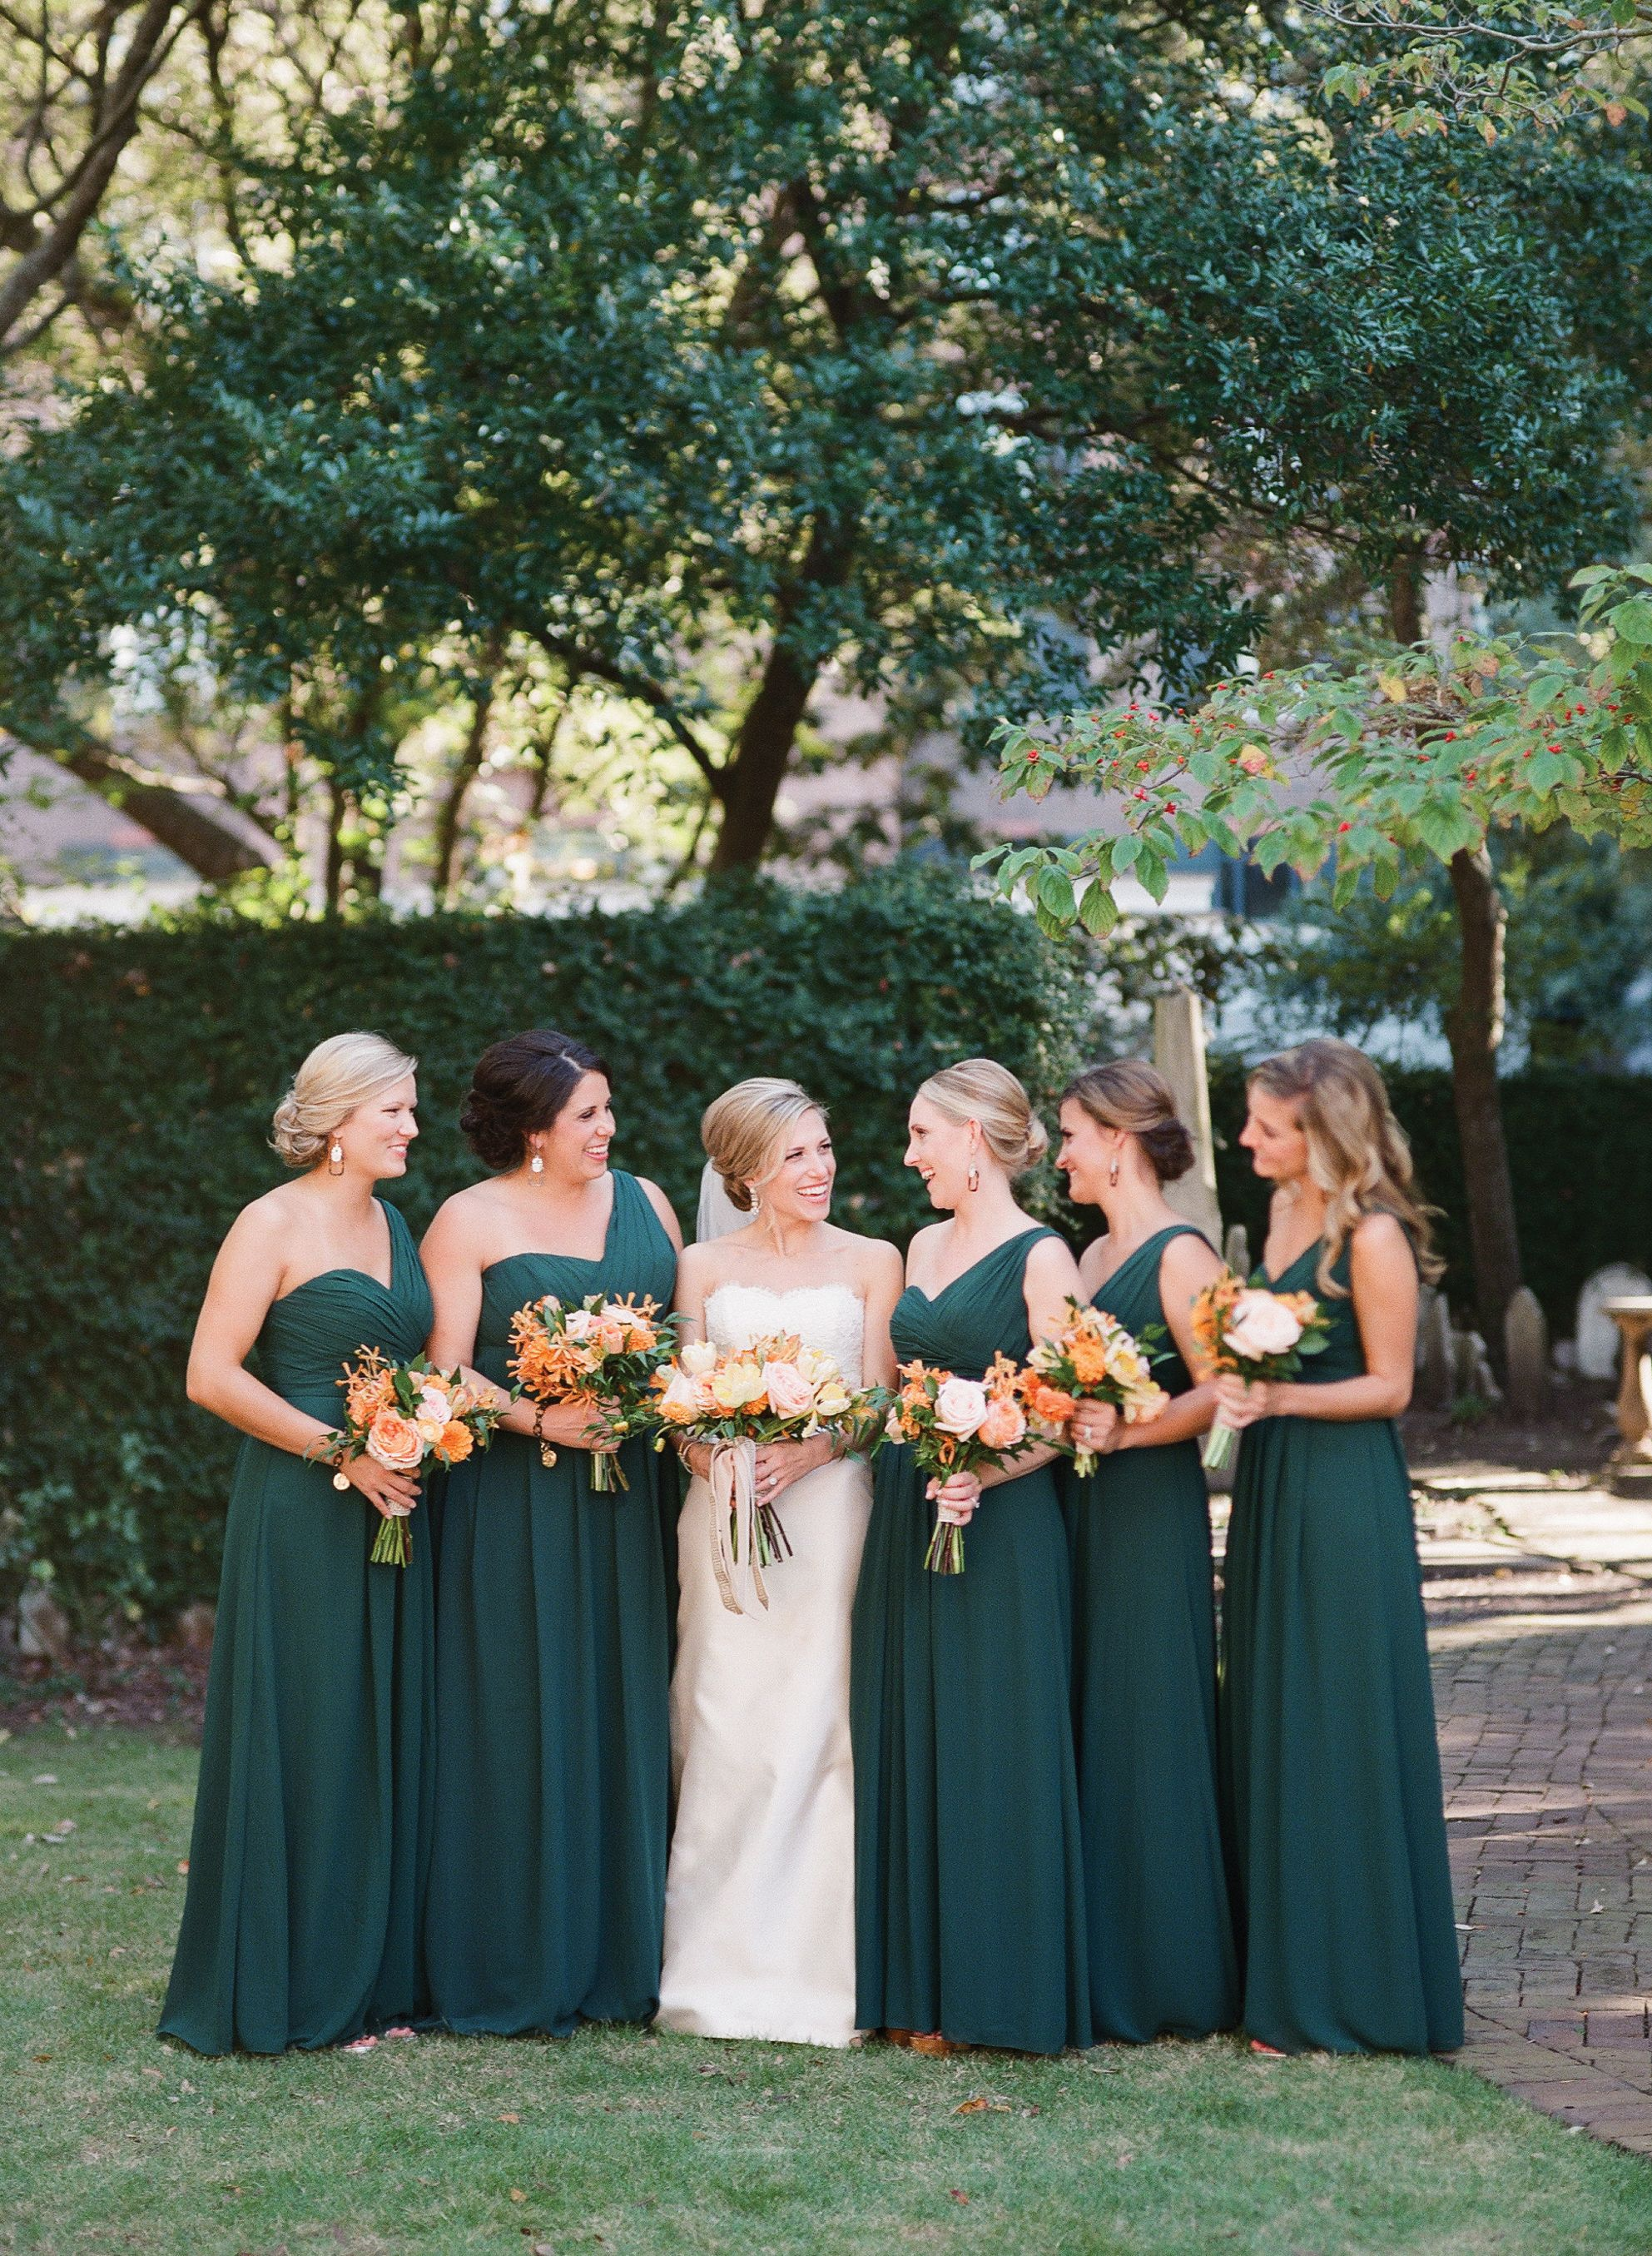 Bill Levkoff Hunter Green Bridesmaid Dresses Forest Green Bridesmaid Dresses Green Bridesmaid Dresses Hunter Green Bridesmaid Dress